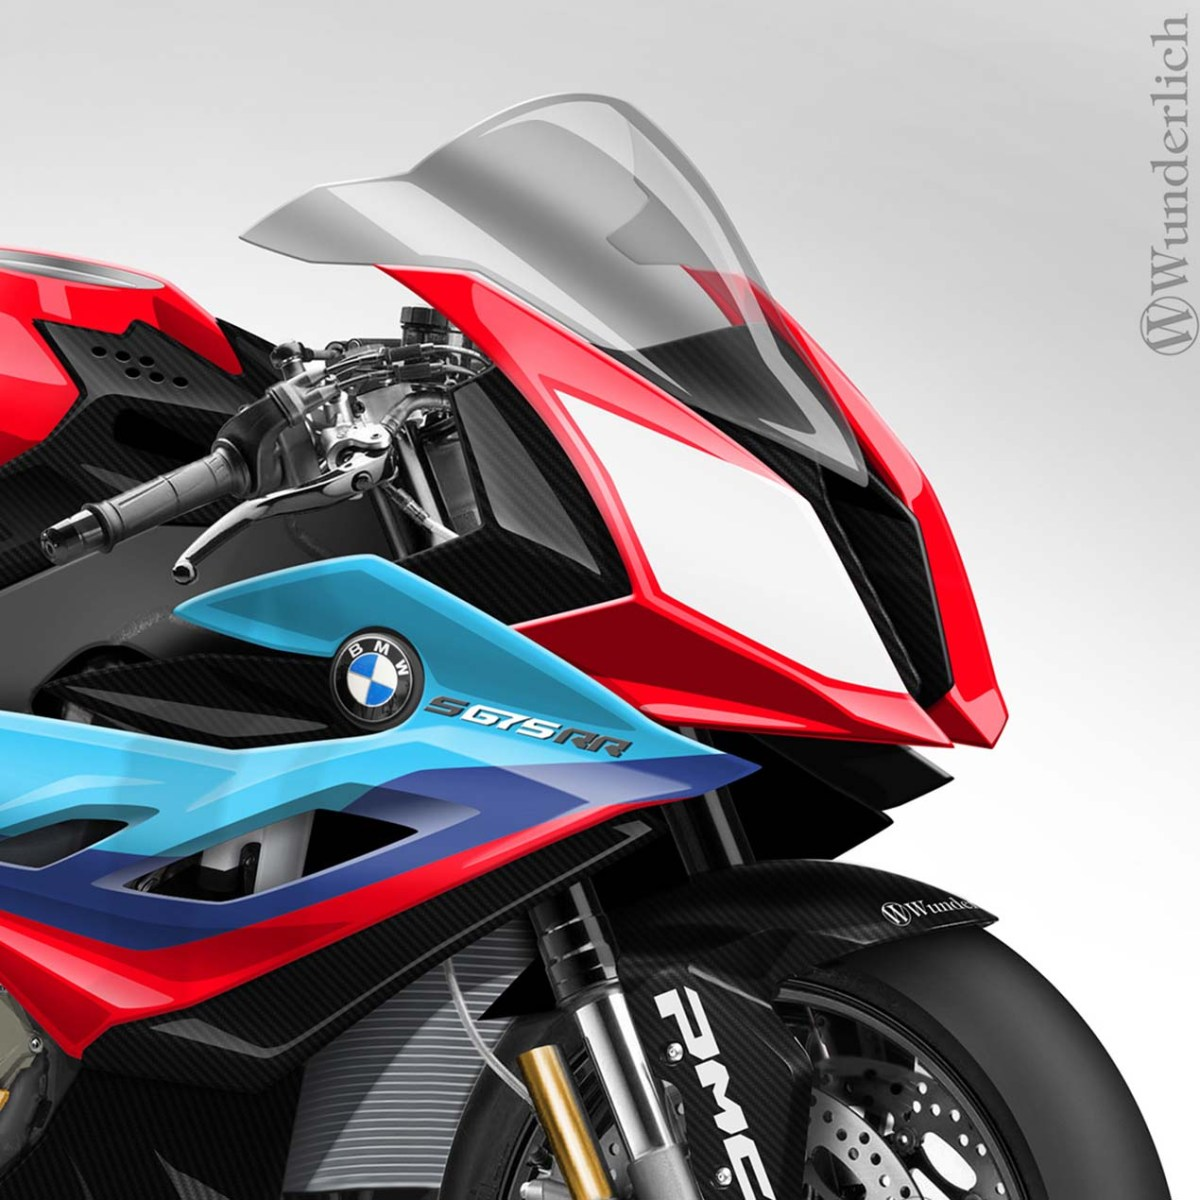 BMW Plans To Launch Nine New Motorcycles